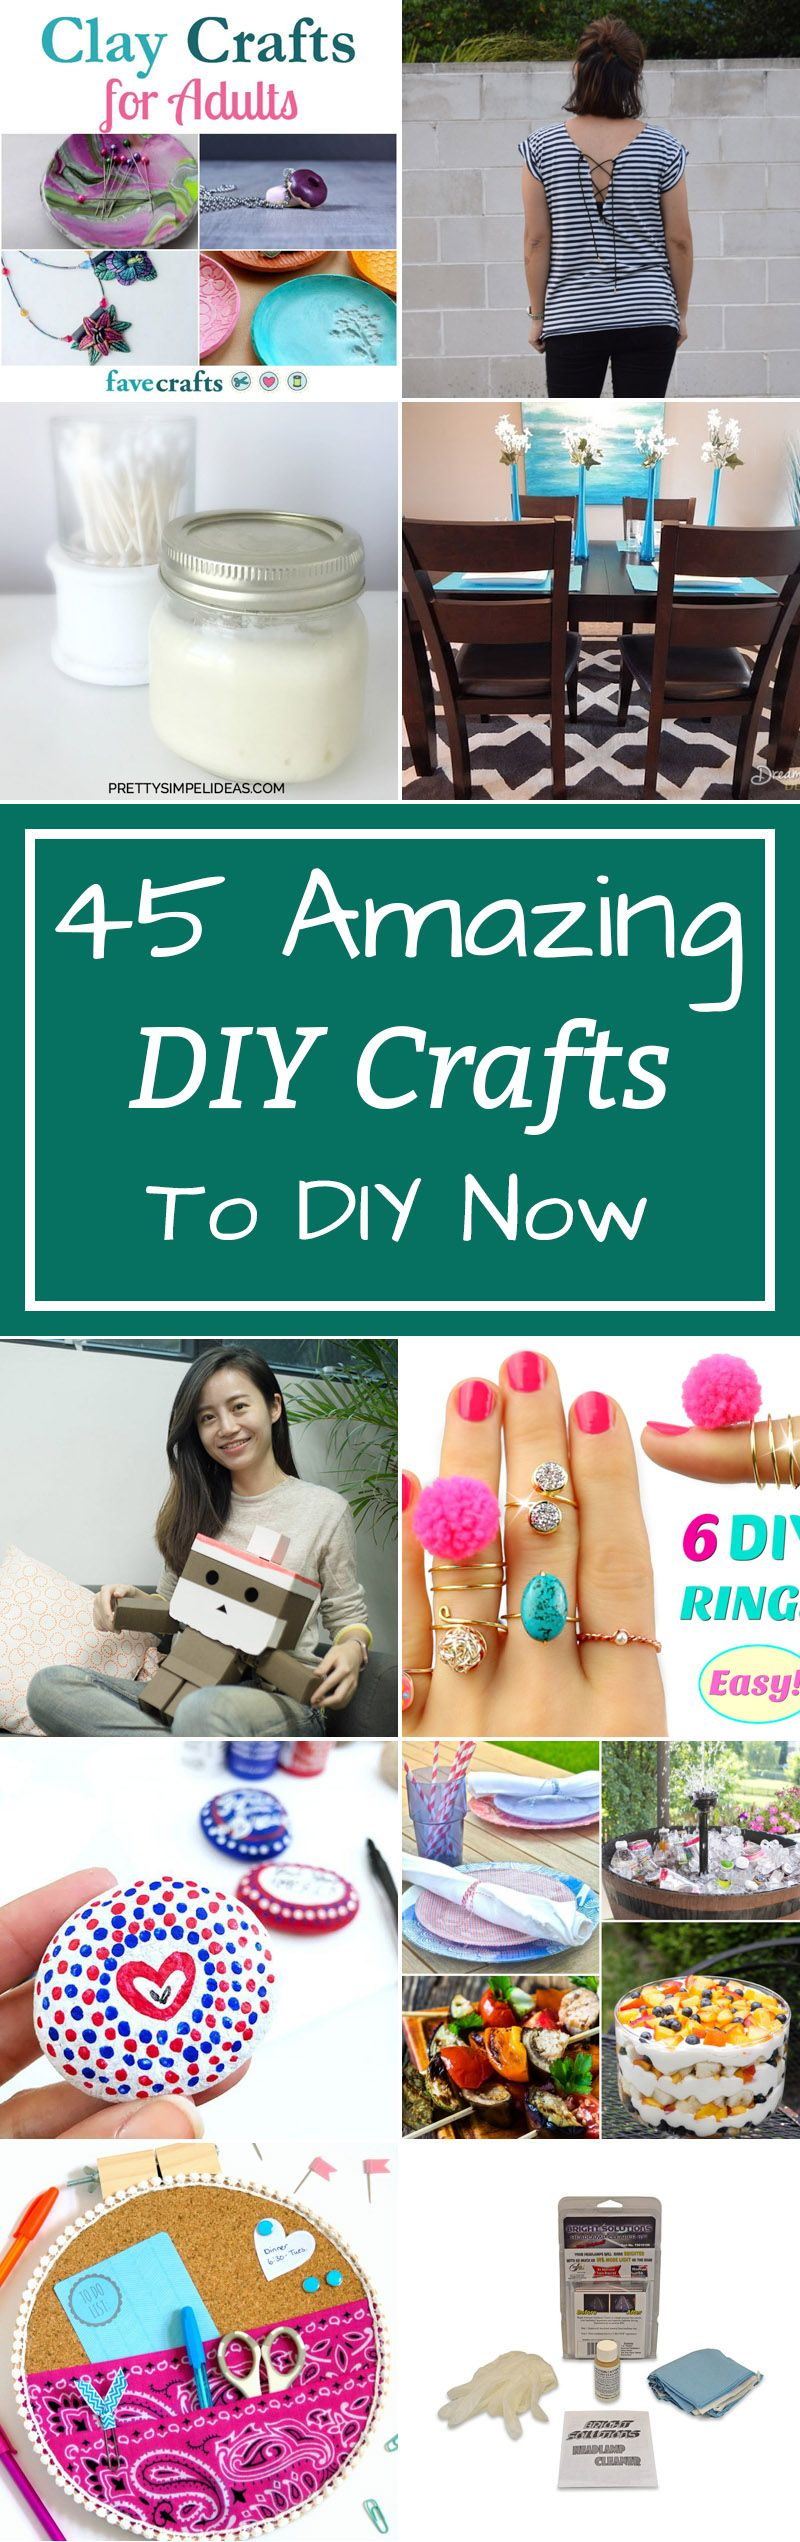 45 Amazing Diy Crafts To Diy Now